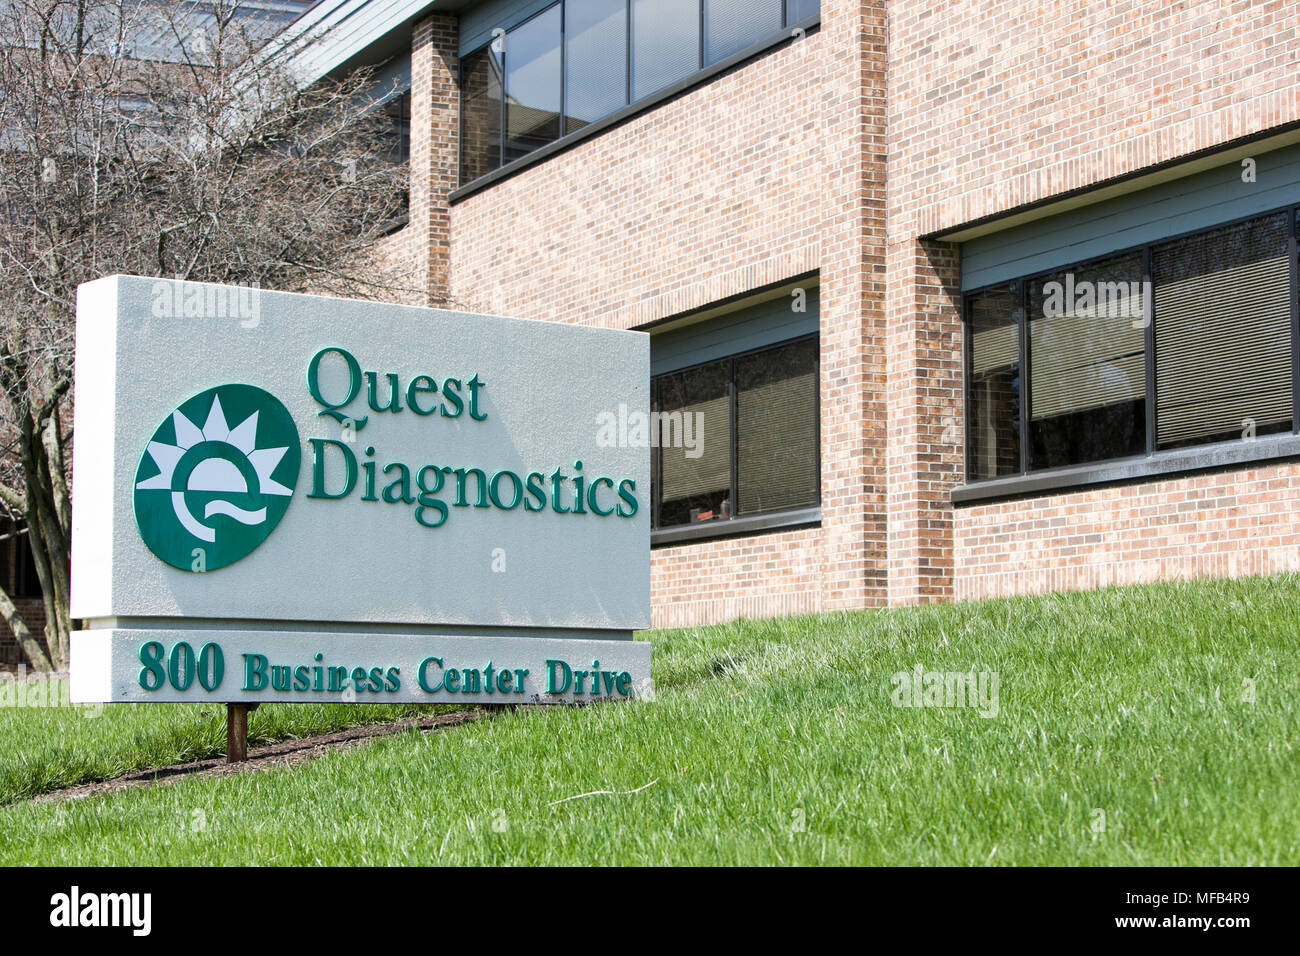 A logo sign outside of a facility occupied by Quest Diagnostics in Horsham, Pennsylvania on April 22, 2018. Stock Photo